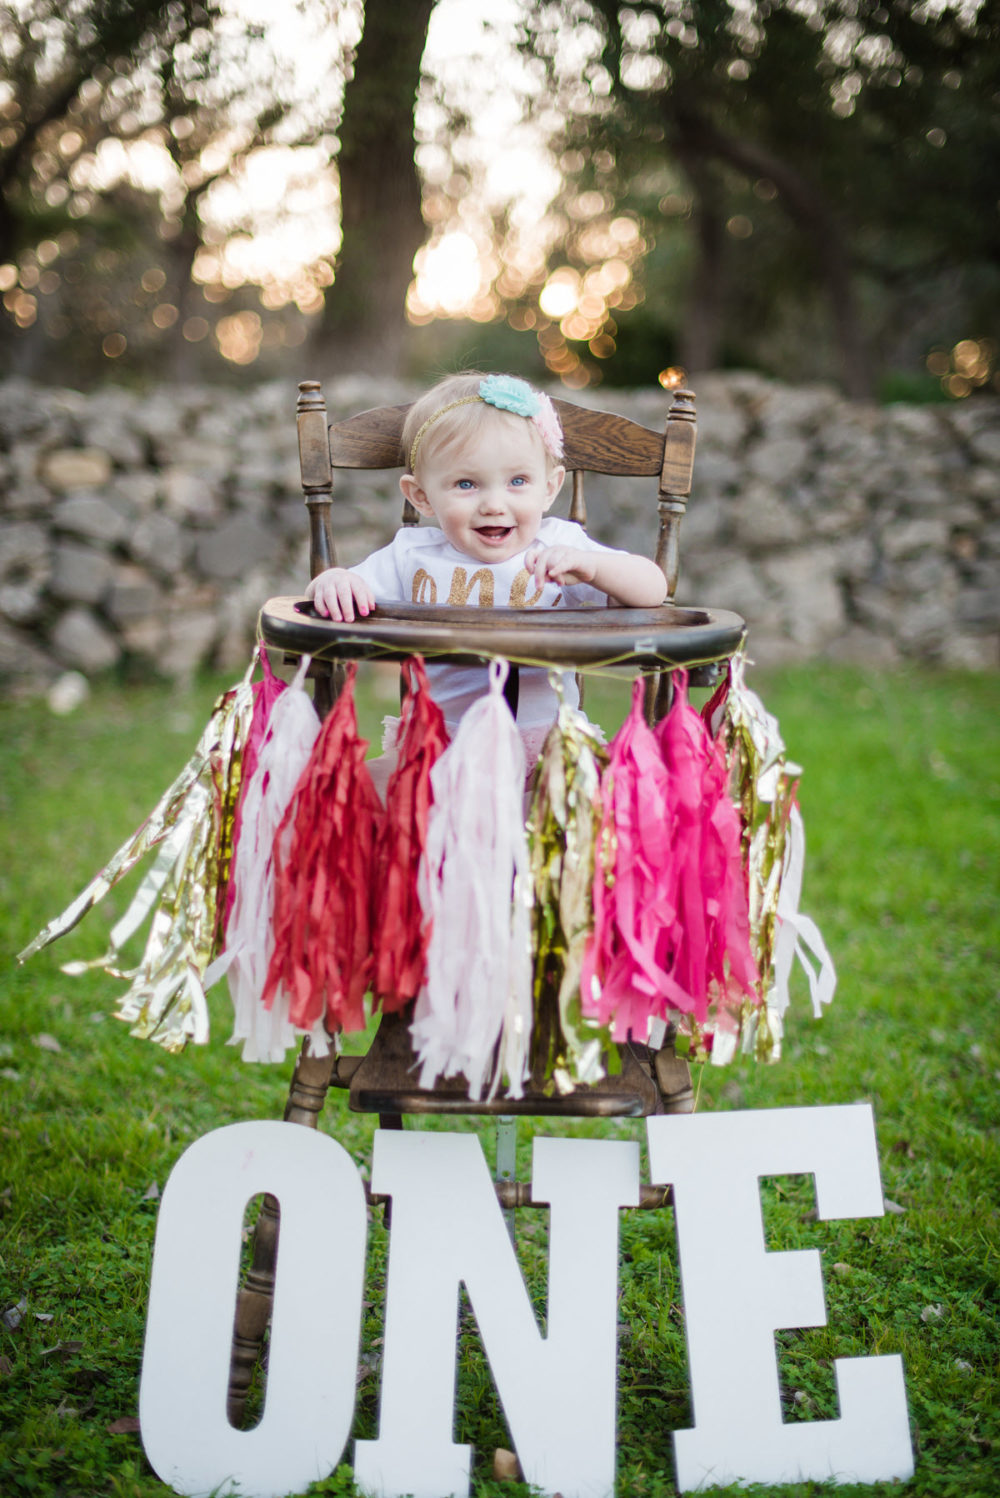 Carly_One_Year_Old_Outdoor_Photos_New_Braunfels_TX-005